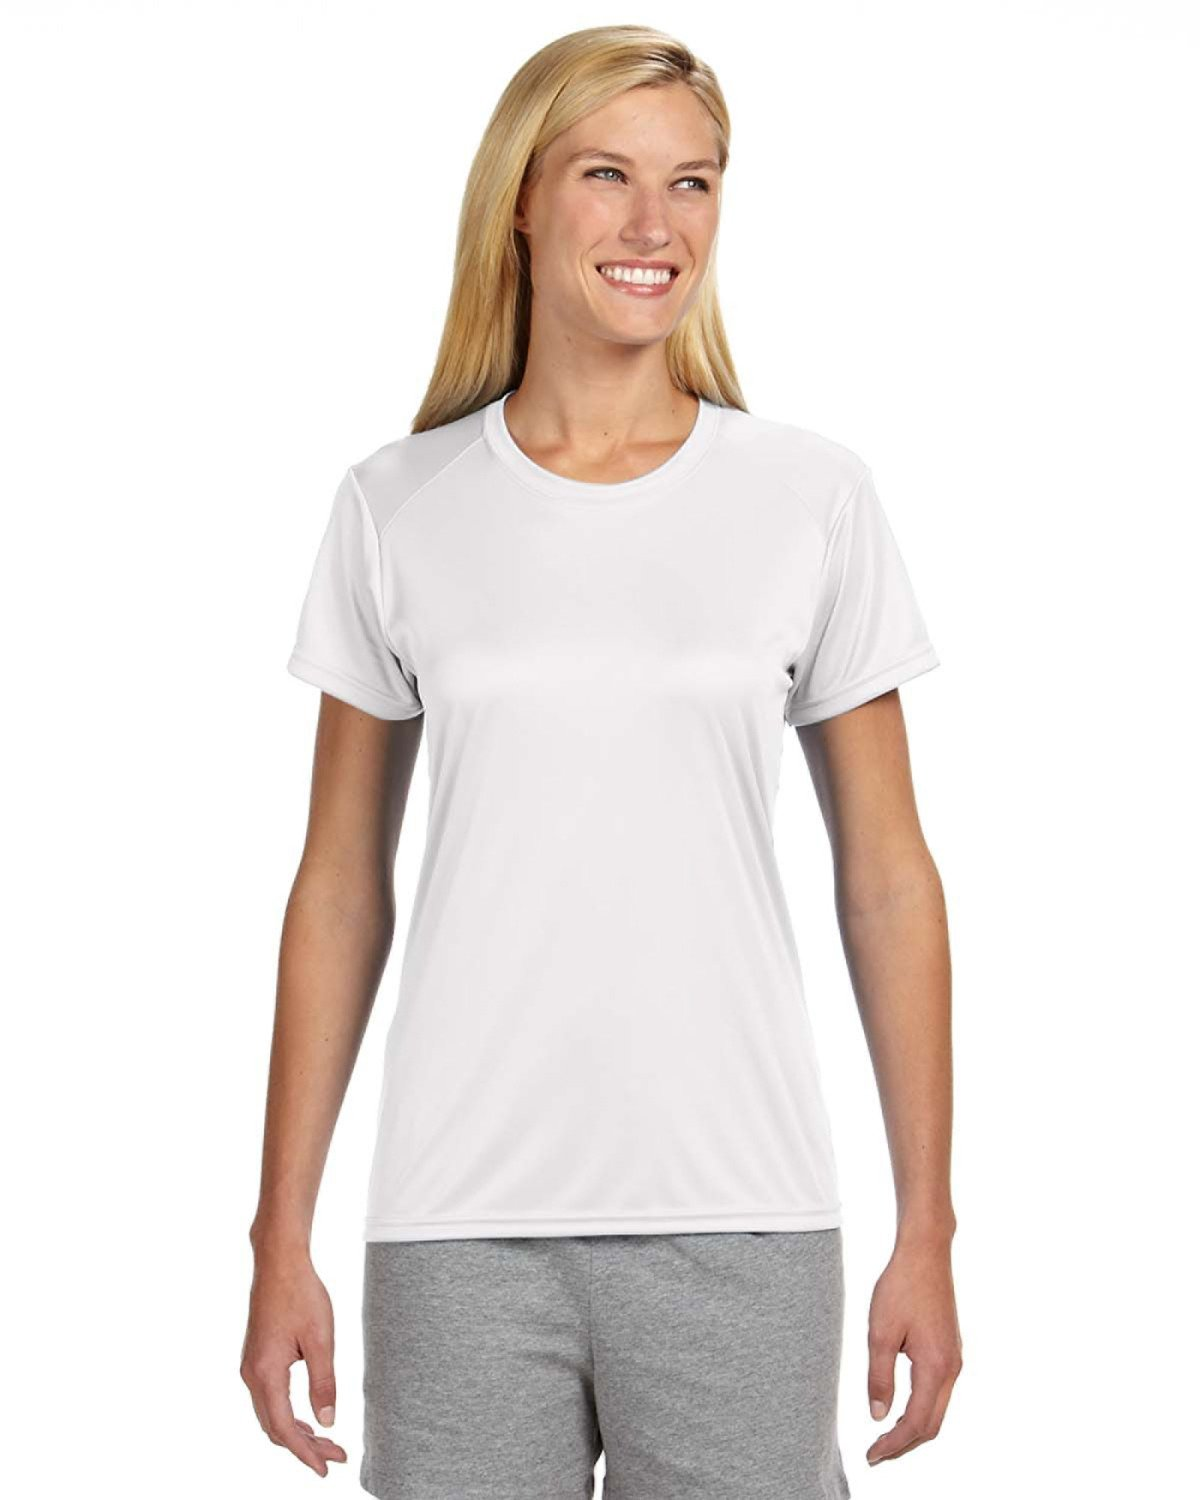 A4 Ladies' Cooling Performance T-Shirt WHITE